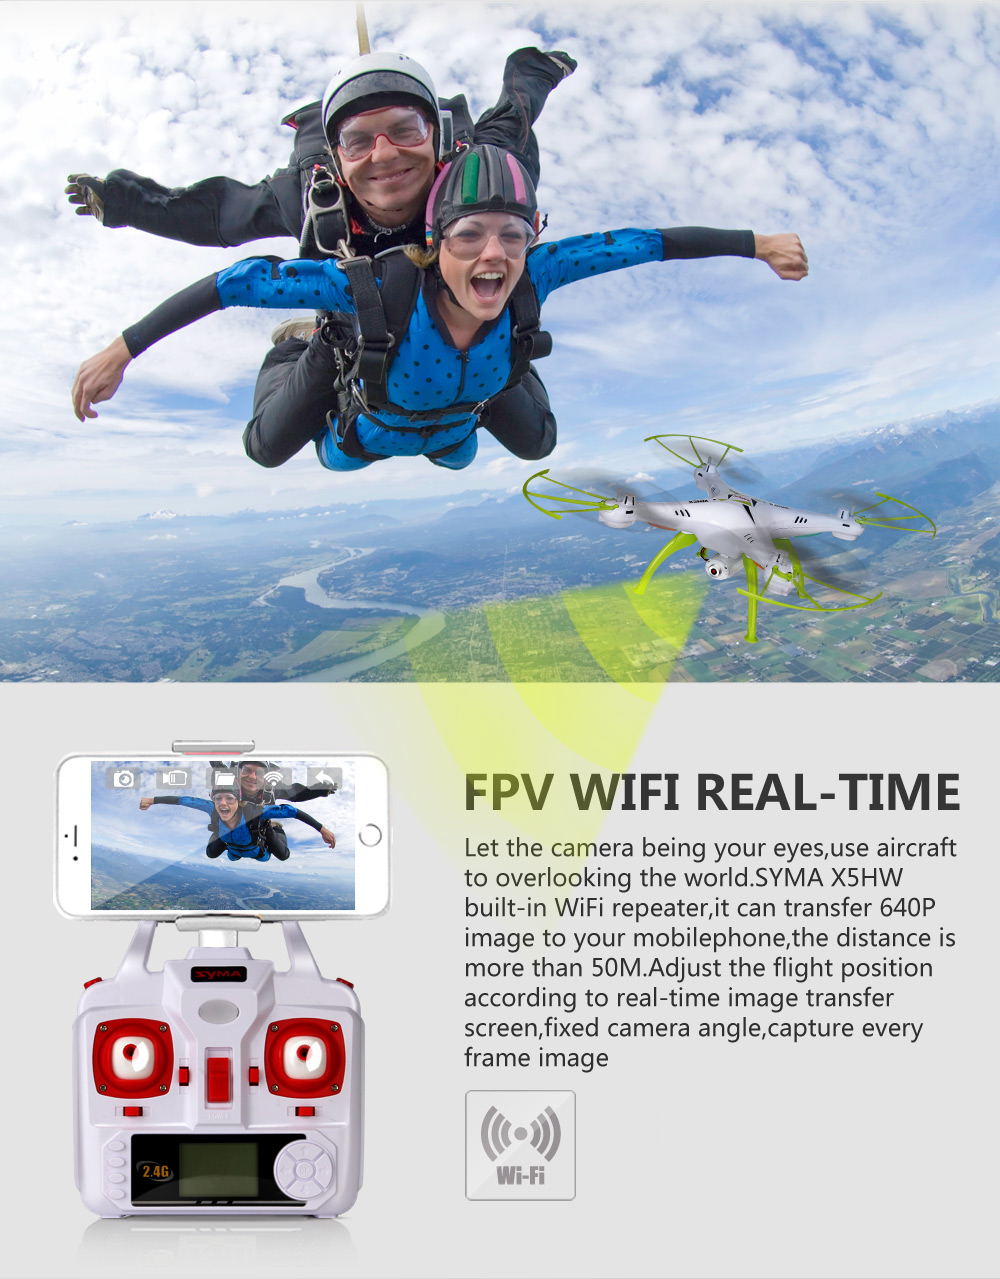 X5HW Camera Drone Quadrocopter Wifi FPV HD Real-time 2.4G 4CH RC Helicopter Quadcopter RC Dron Toy (X5SW Upgrade) yc folding mini rc drone fpv wifi 500w hd camera remote control kids toys quadcopter helicopter aircraft toy kid air plane gift